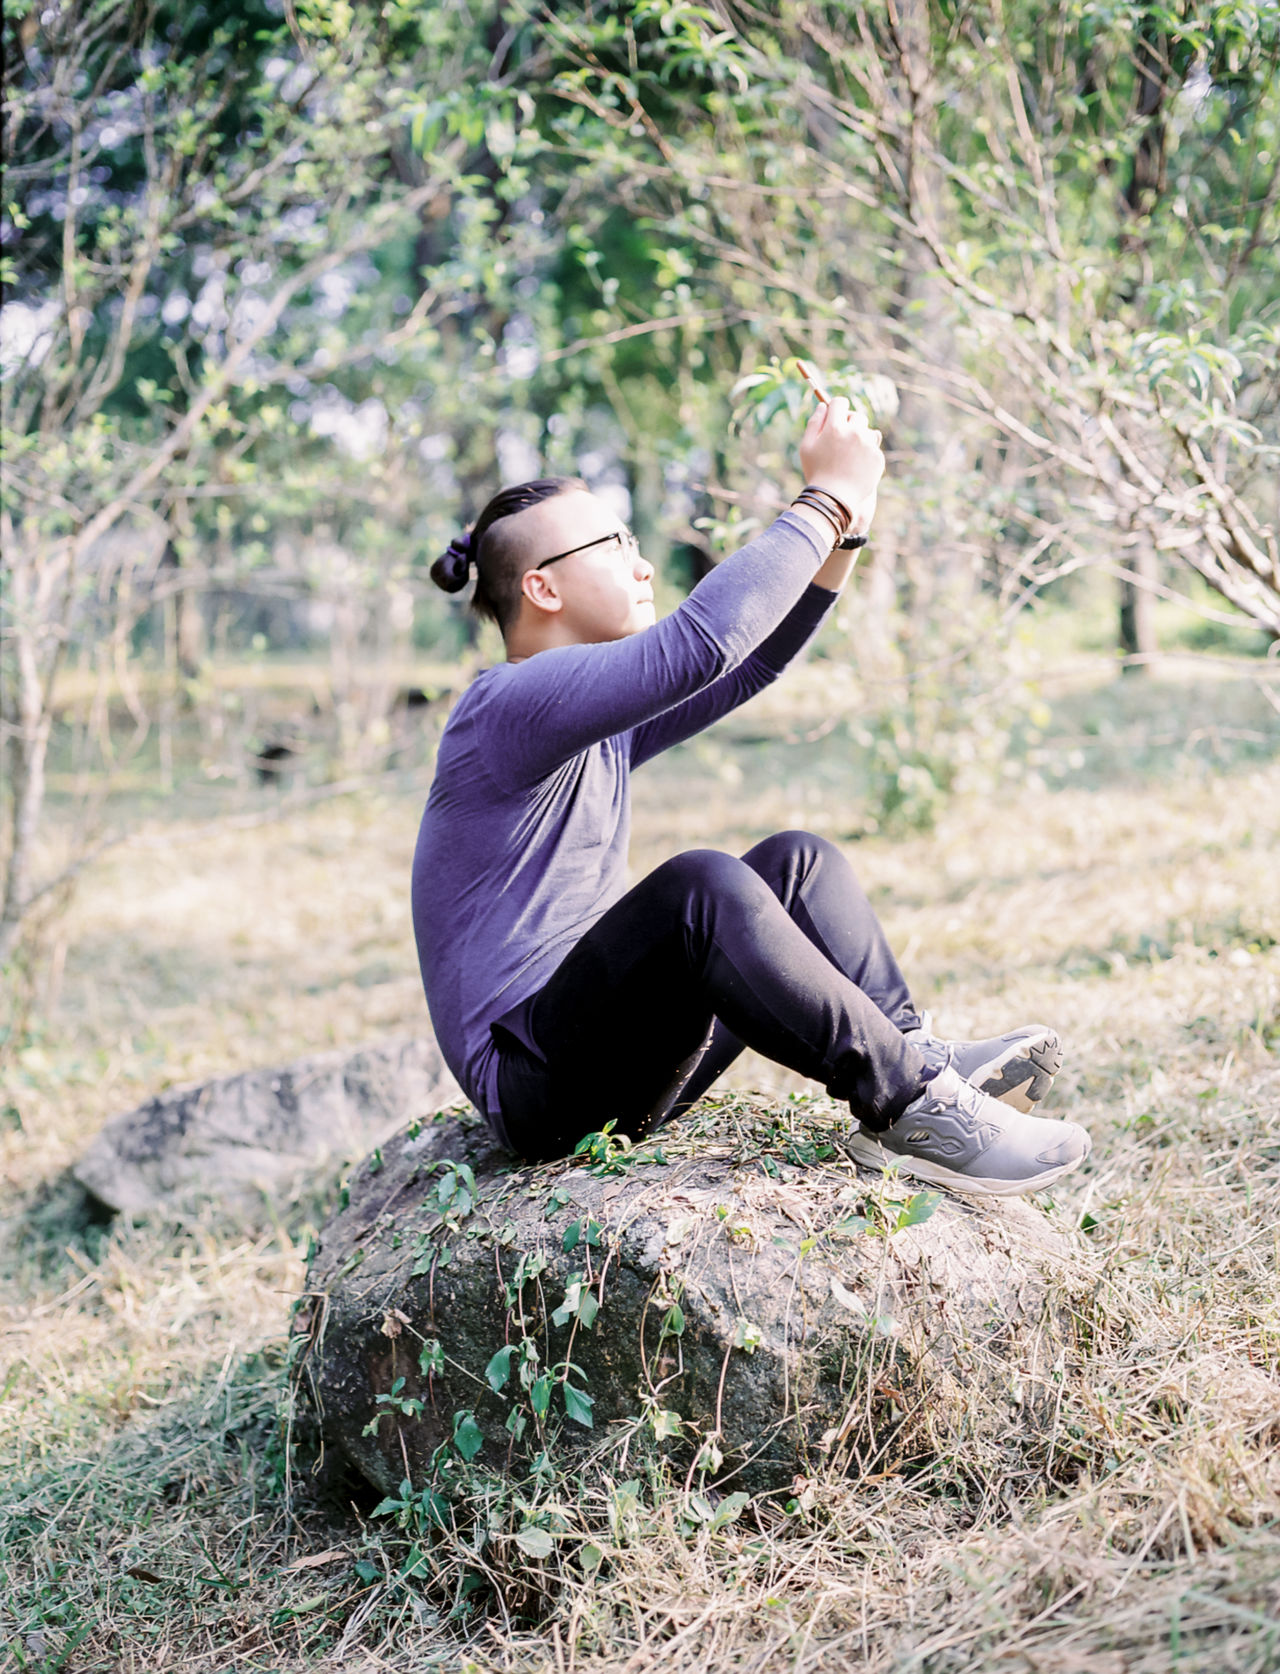 Alone Autum Swinger Balance Carefree Casual Clothing Escapism Front View Full Length Getting Away From It All Hanging Out Holding Human Leg Leisure Activity Lifestyles Perspective Portrait Real People Relaxation Side View Sitting Standing Three Quarter Length Yama Young Adult